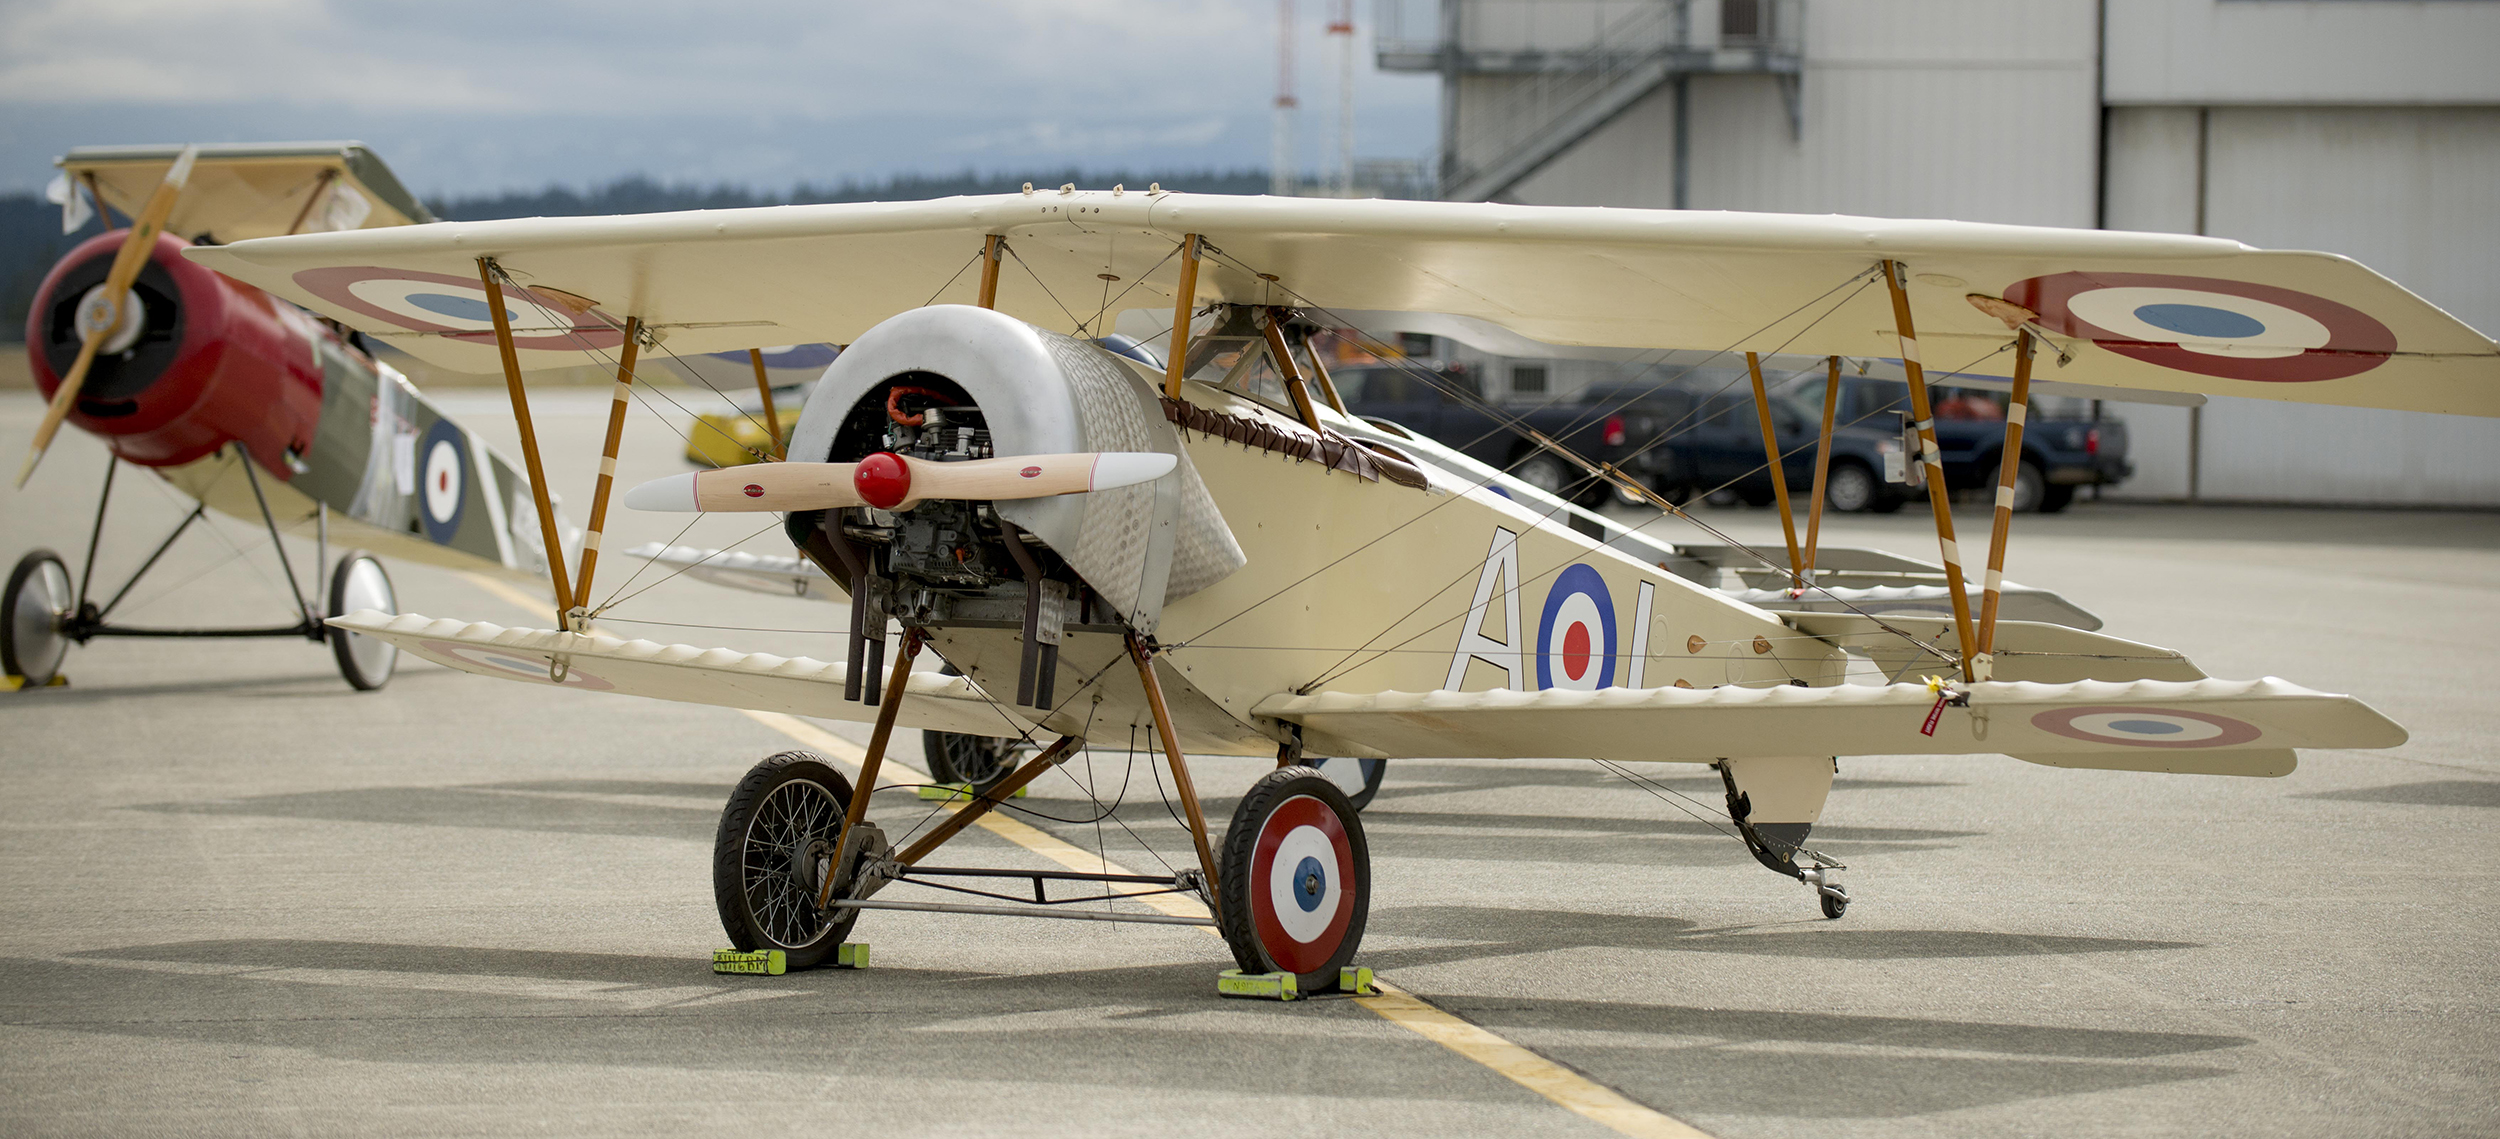 A Nieuport XI waits its turn to be loaded onto a CC-177 Globemaster III from 429 Transport Squadron at 19 Wing Comox, British Columbia, on March 15, 2017. PHOTO: Master Seaman Roxanne Wood, CX04-2017-0100-13